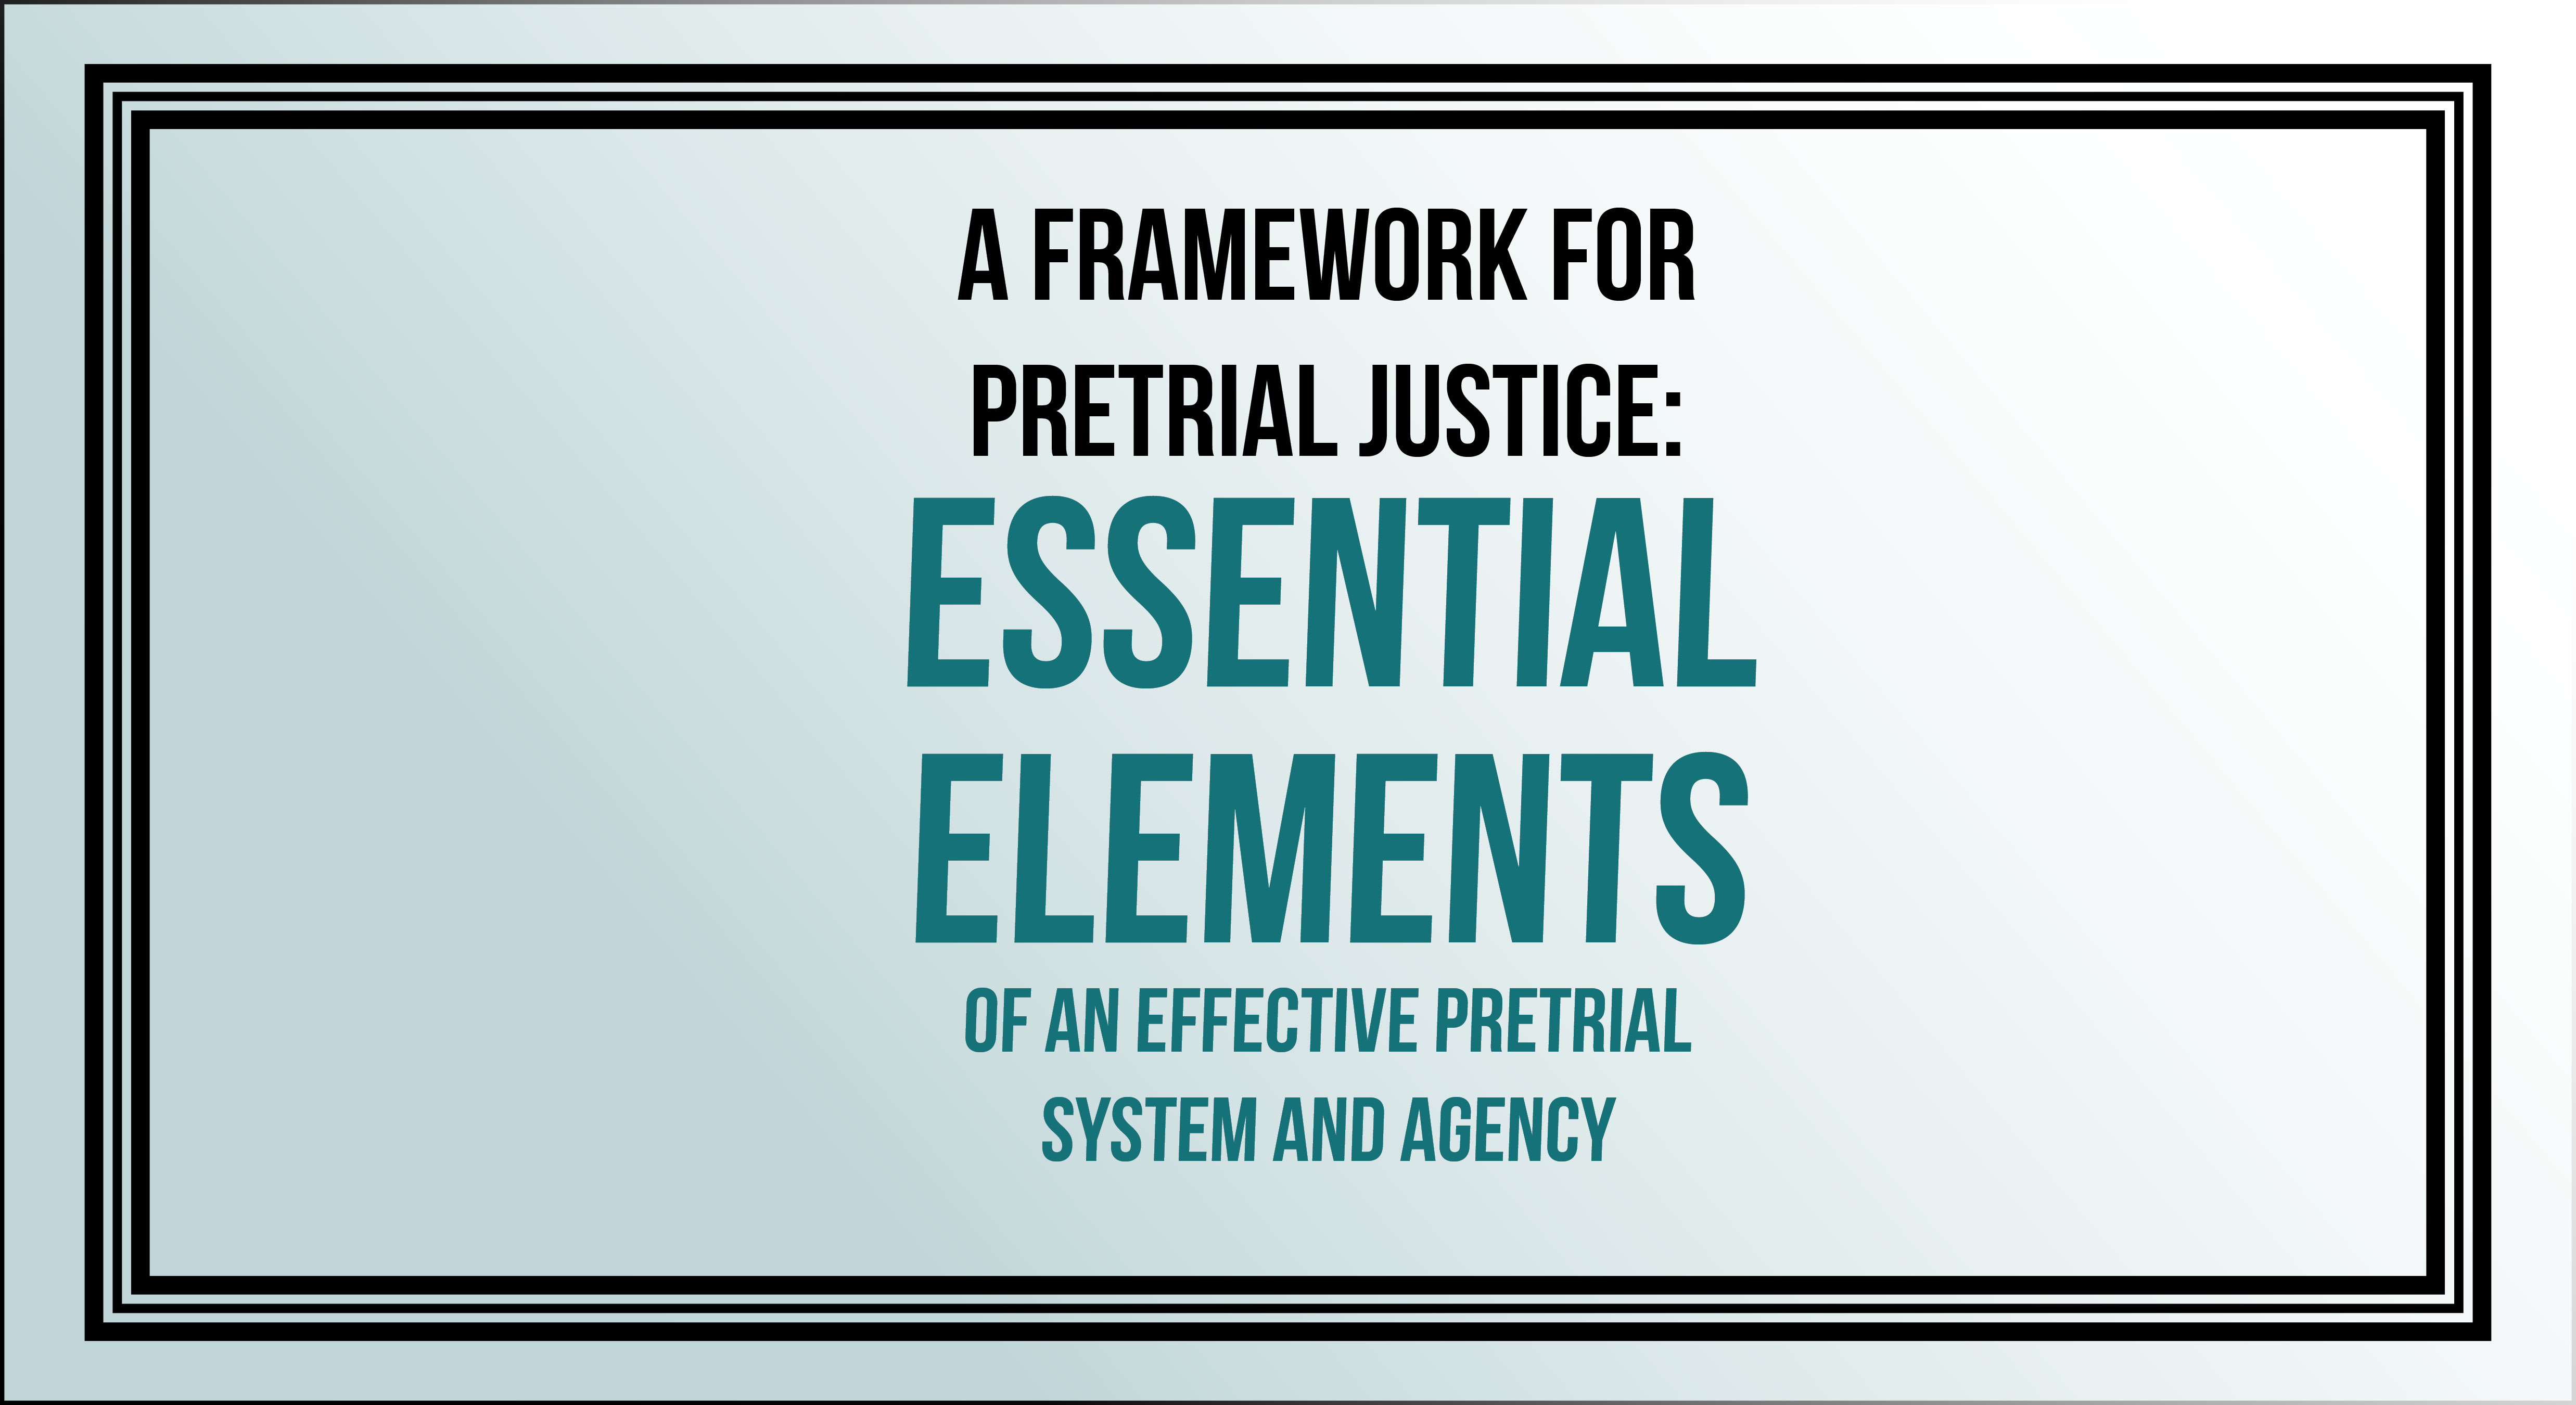 Essential Elements of an Effective Pretrial System & Agency - Dane County